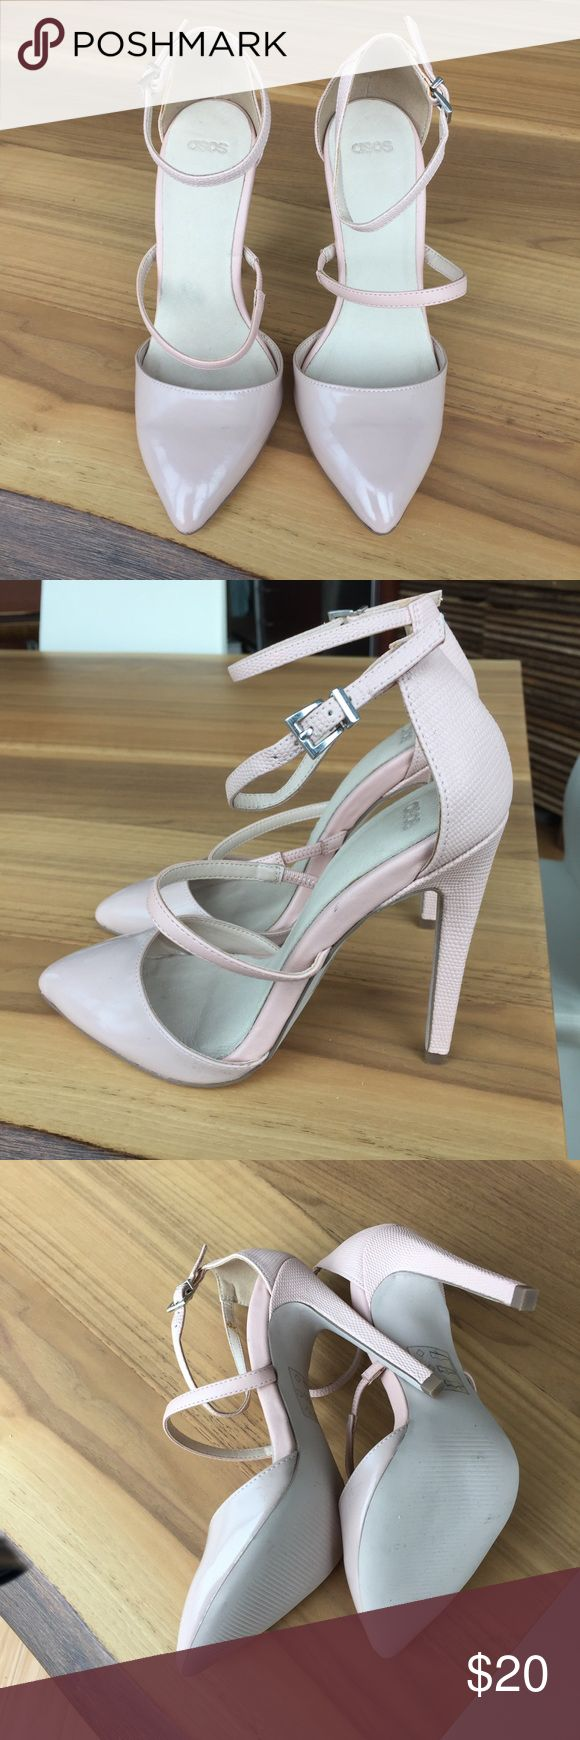 ASOS Blush Pink Heels NEW ASOS Blush Pink Heels NEW, never worn outside, only tried on in house, too big for me after ordering online and missed return window Shoes Heels